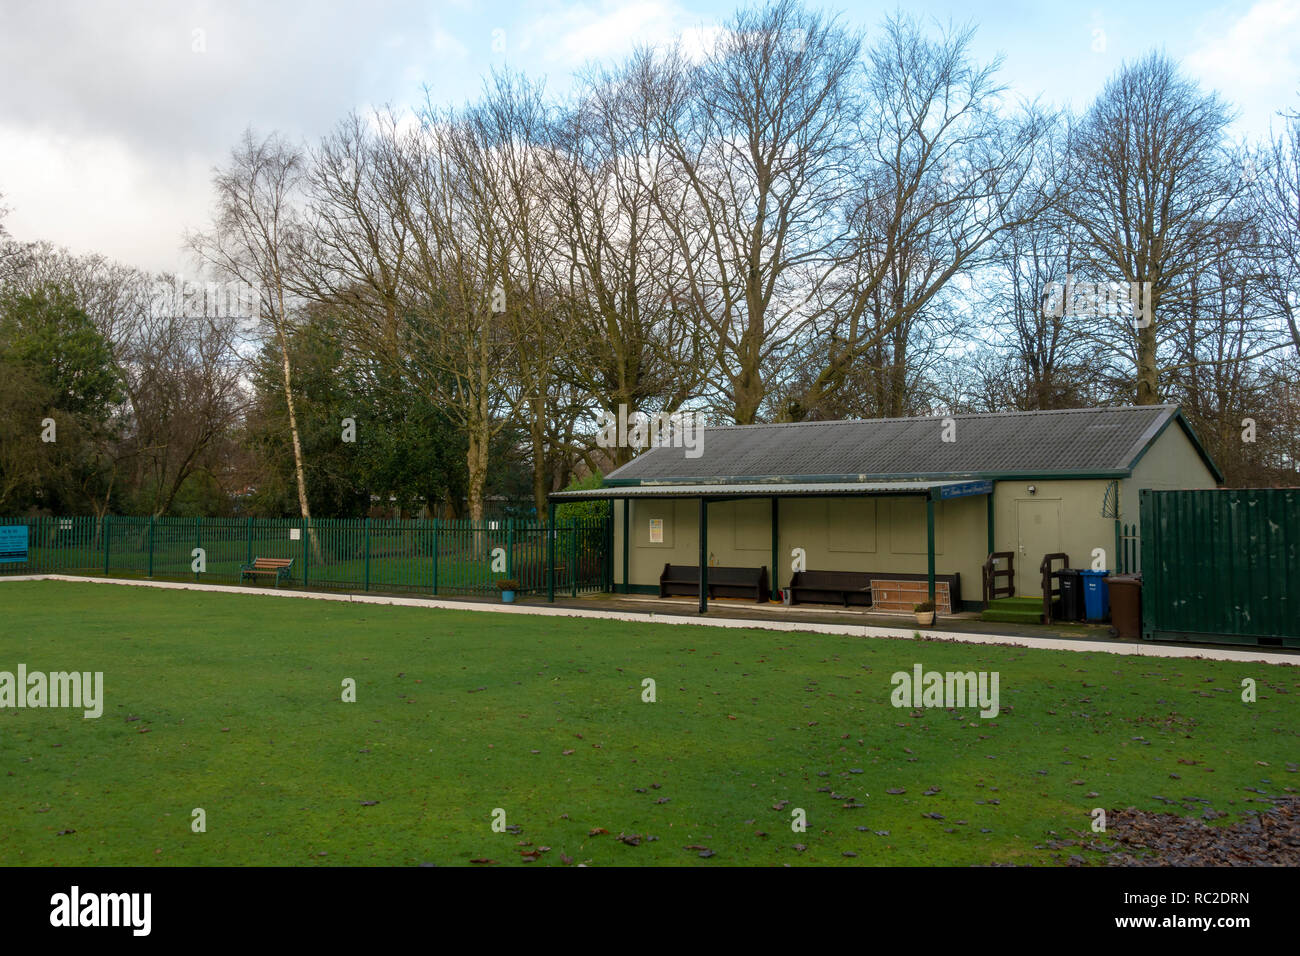 Close Park Radcliffe Bowling Pavilion - Stock Image